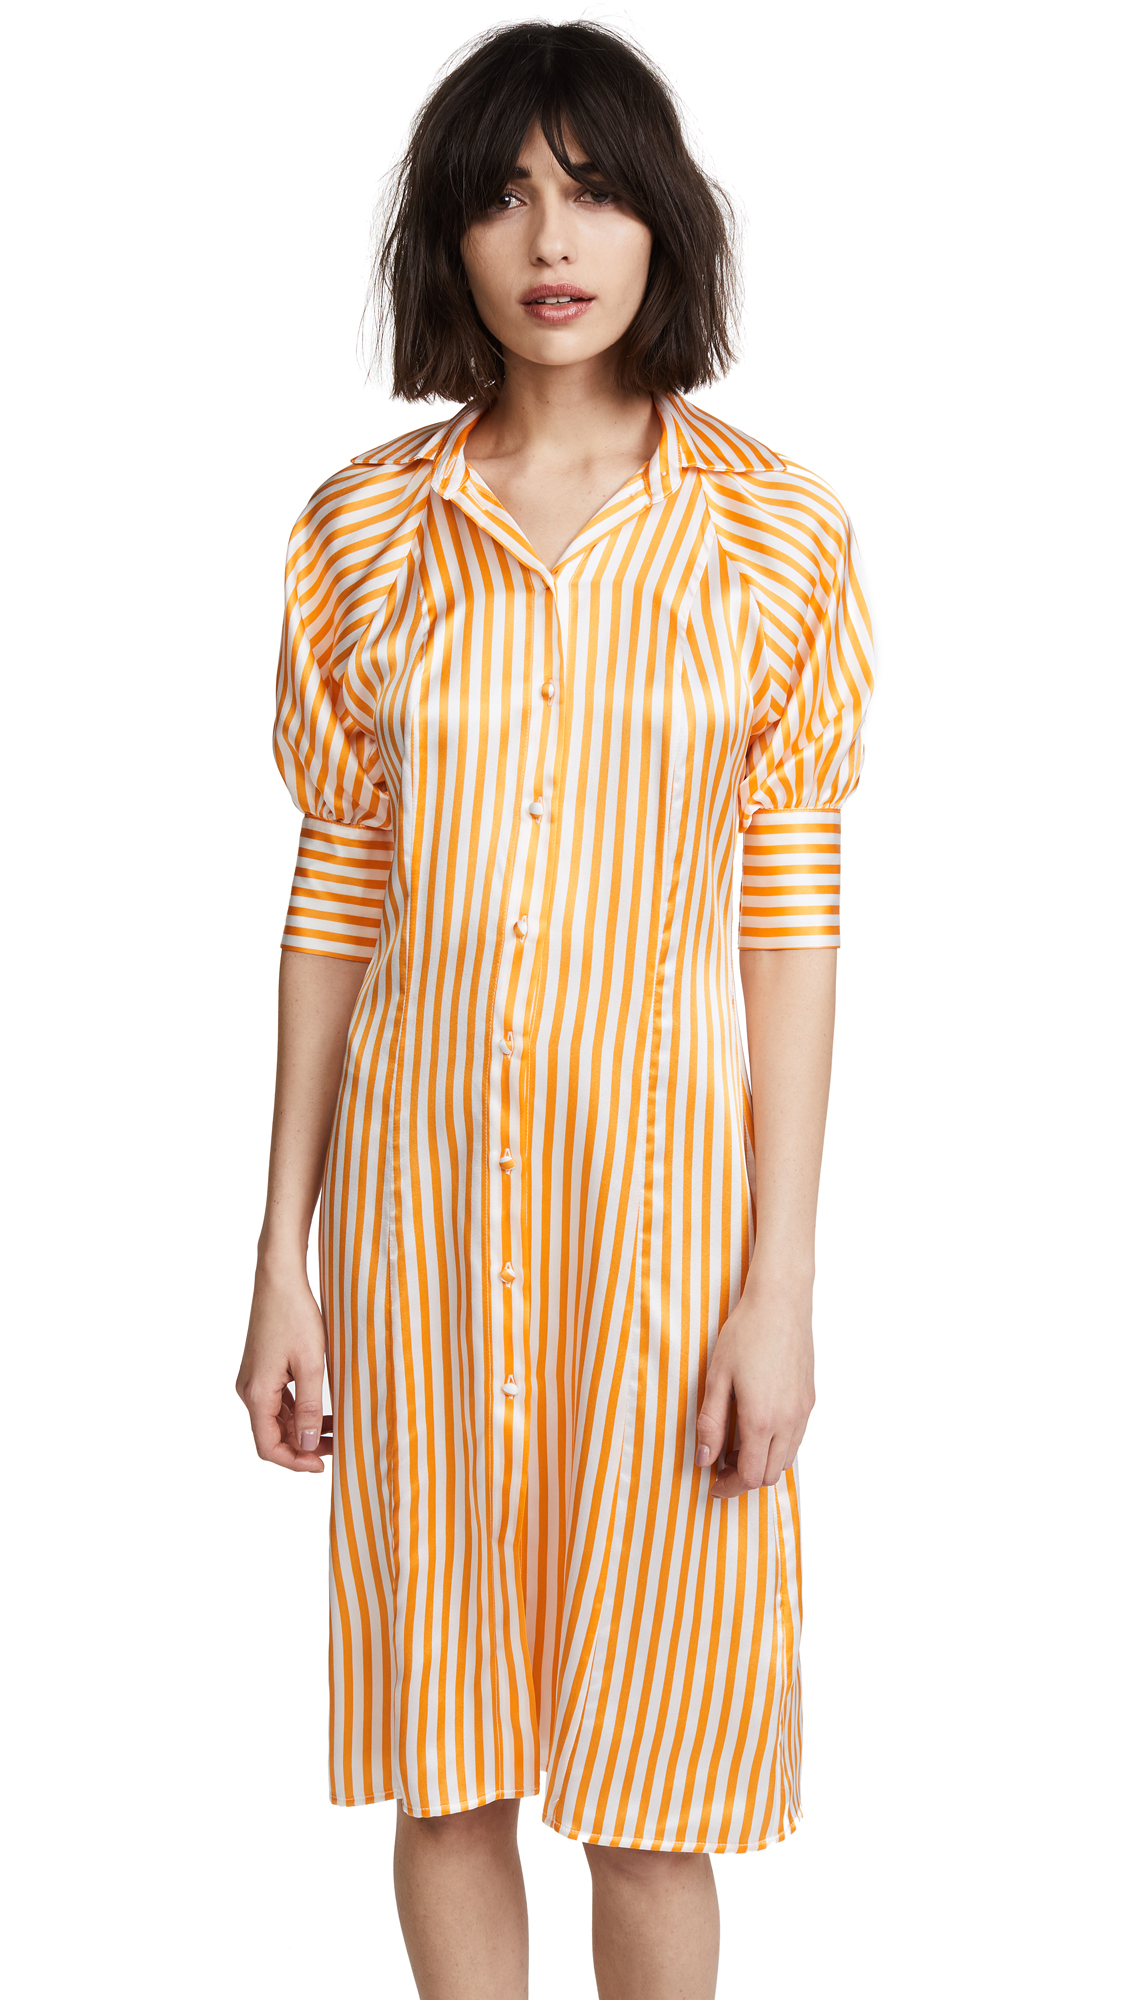 Maggie Marilyn Toni Shirt Dress In Sunshine Stripe